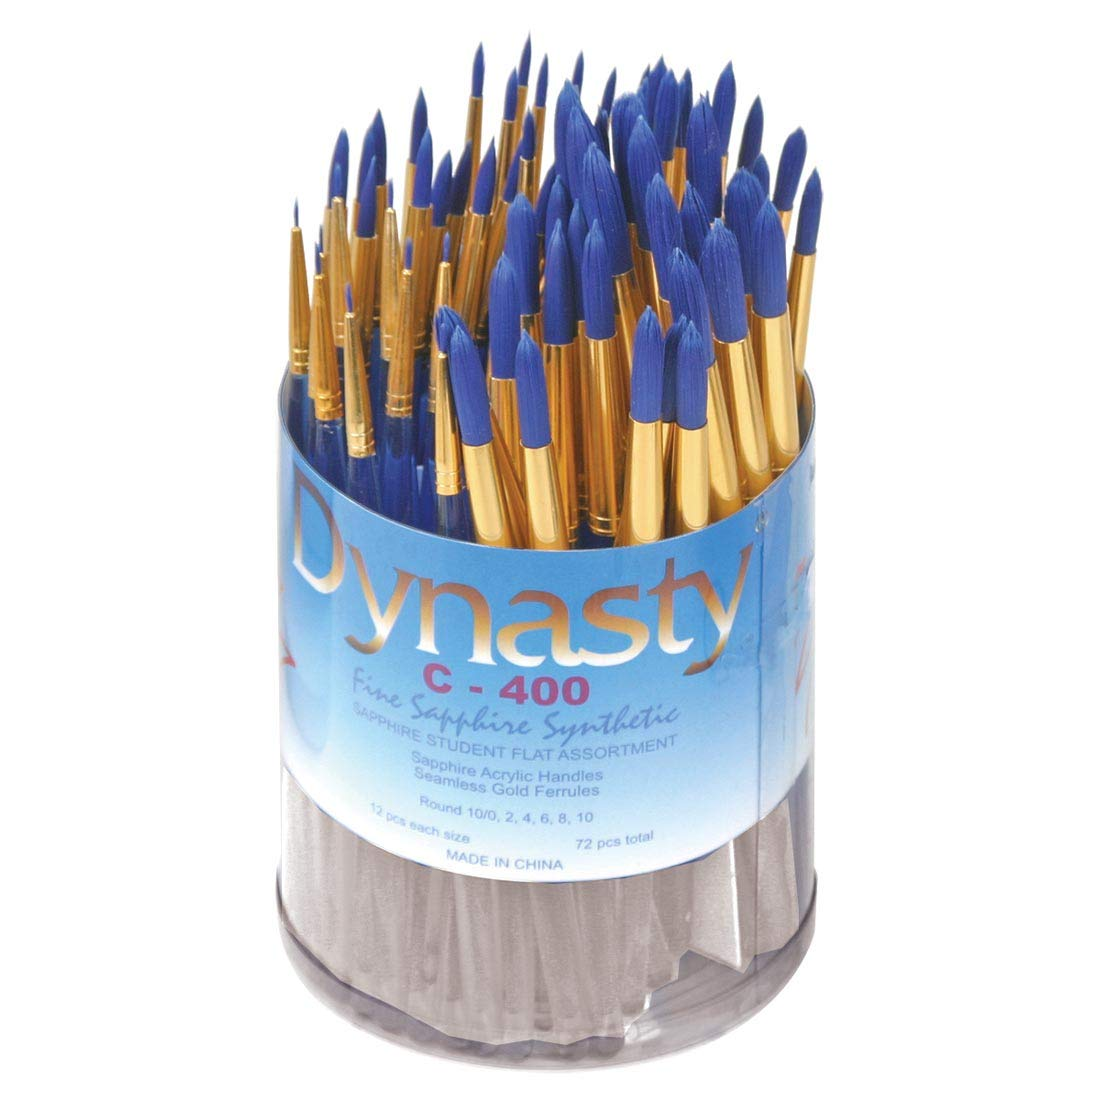 Dynasty C-400 Synthetic Round Brushes - Multiple Sizes - Set of 72 - Clear Handles with Blue Brushes by DYNASTY